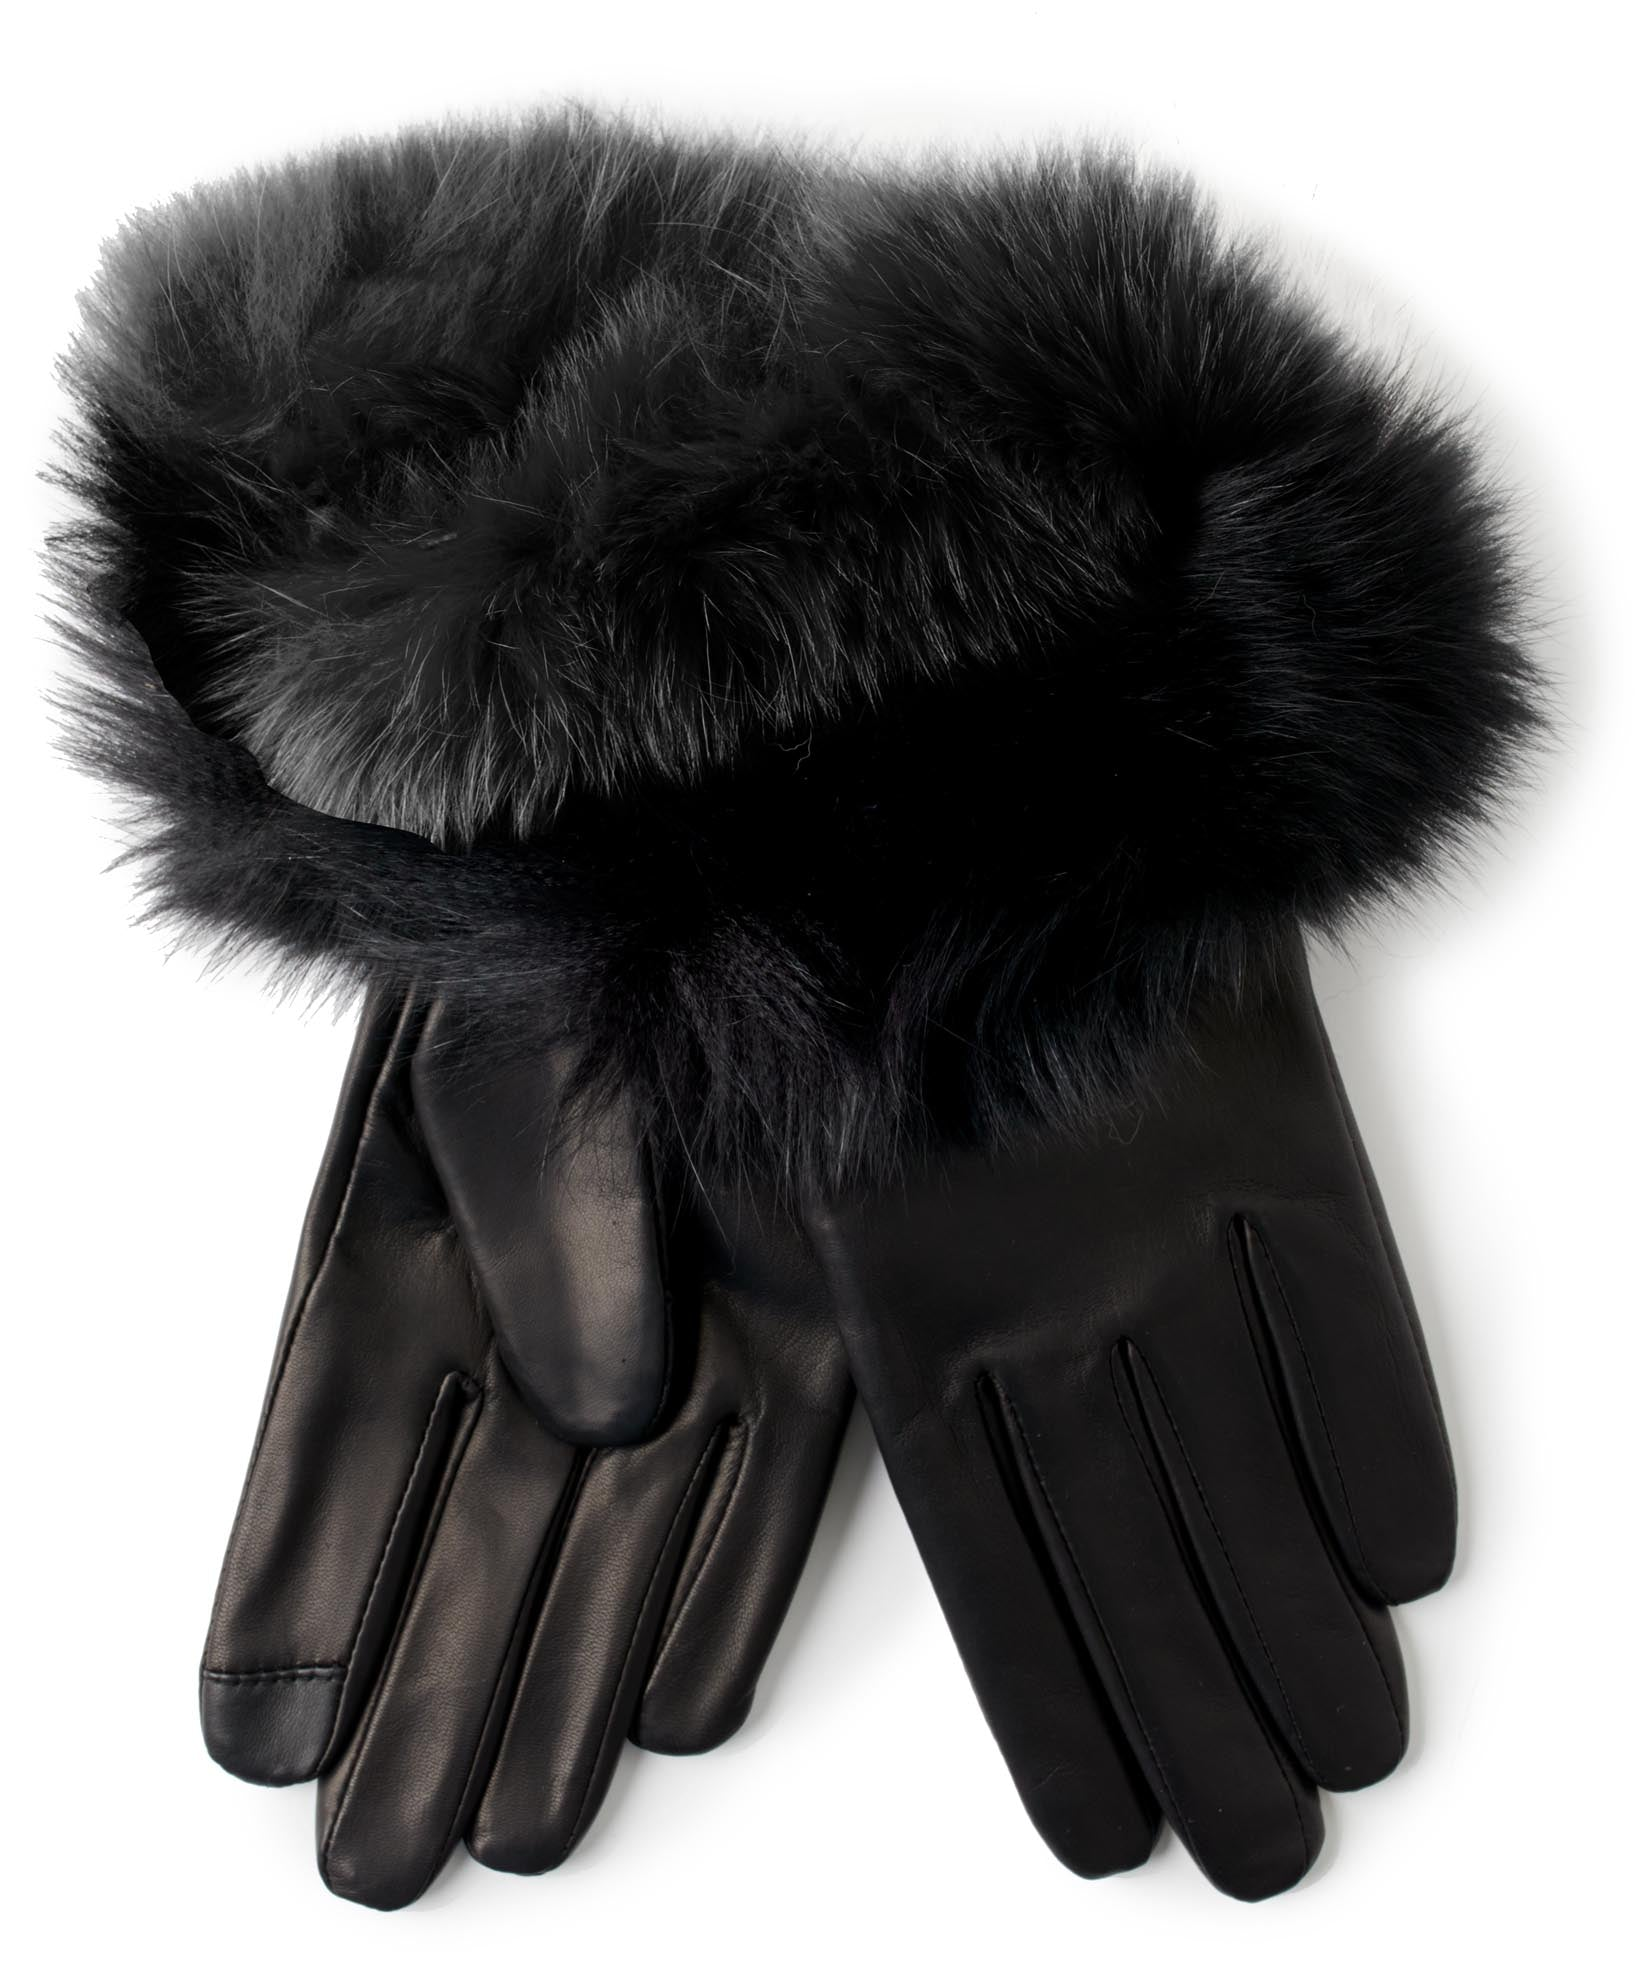 Black - Fox Trot Glove